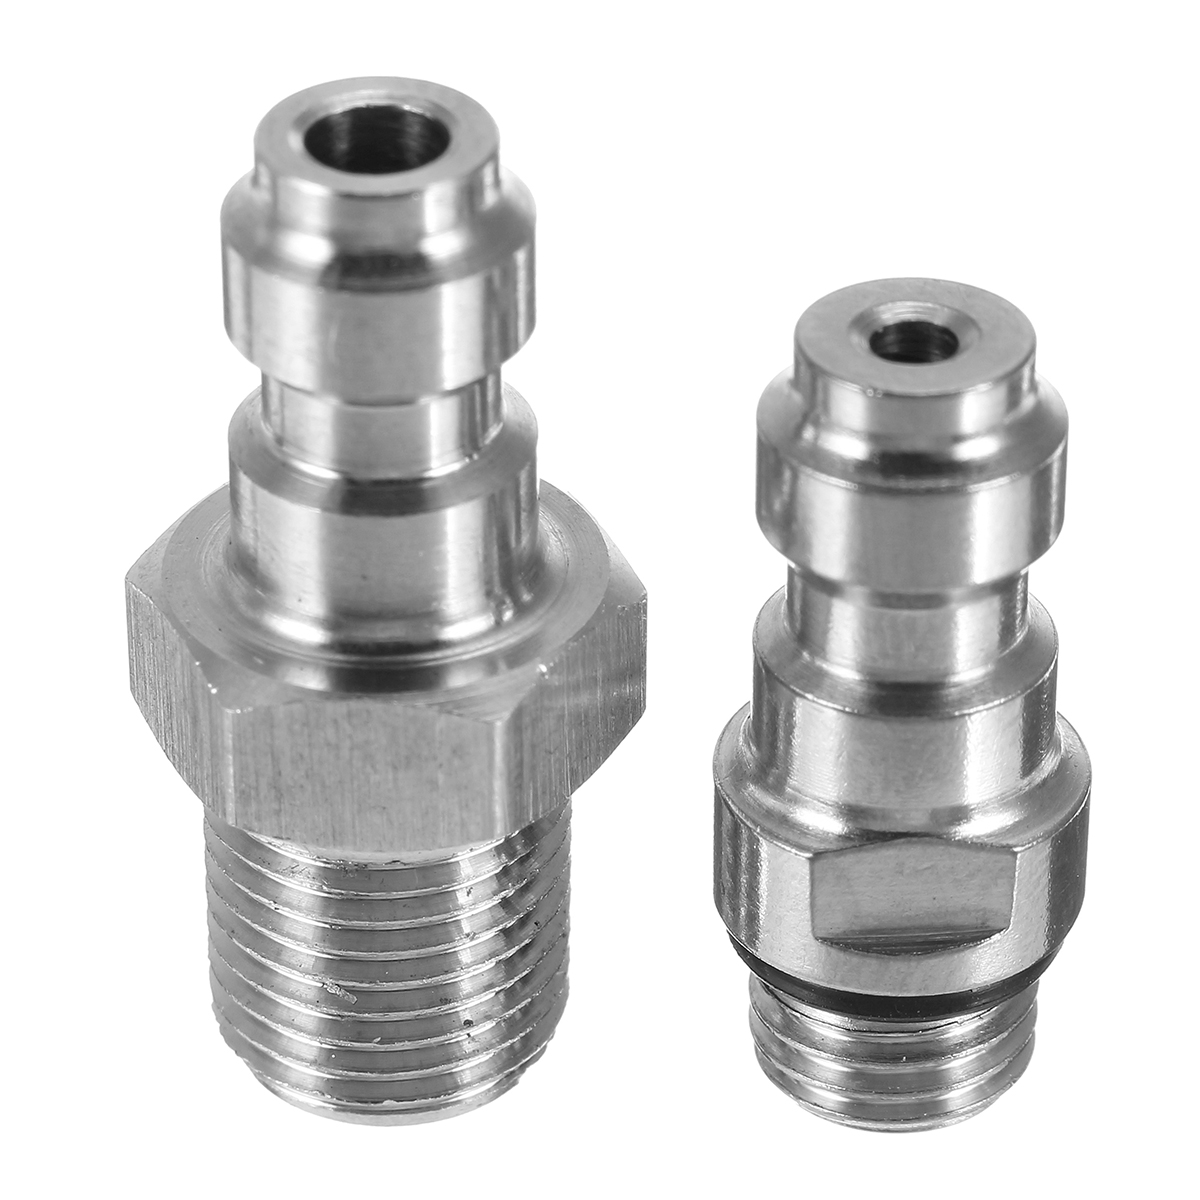 M8x1 0 Threads PCP Fill Nipple Stainless Steel 8mm Air Tank One Way Foster  Fitting Screwed Joint